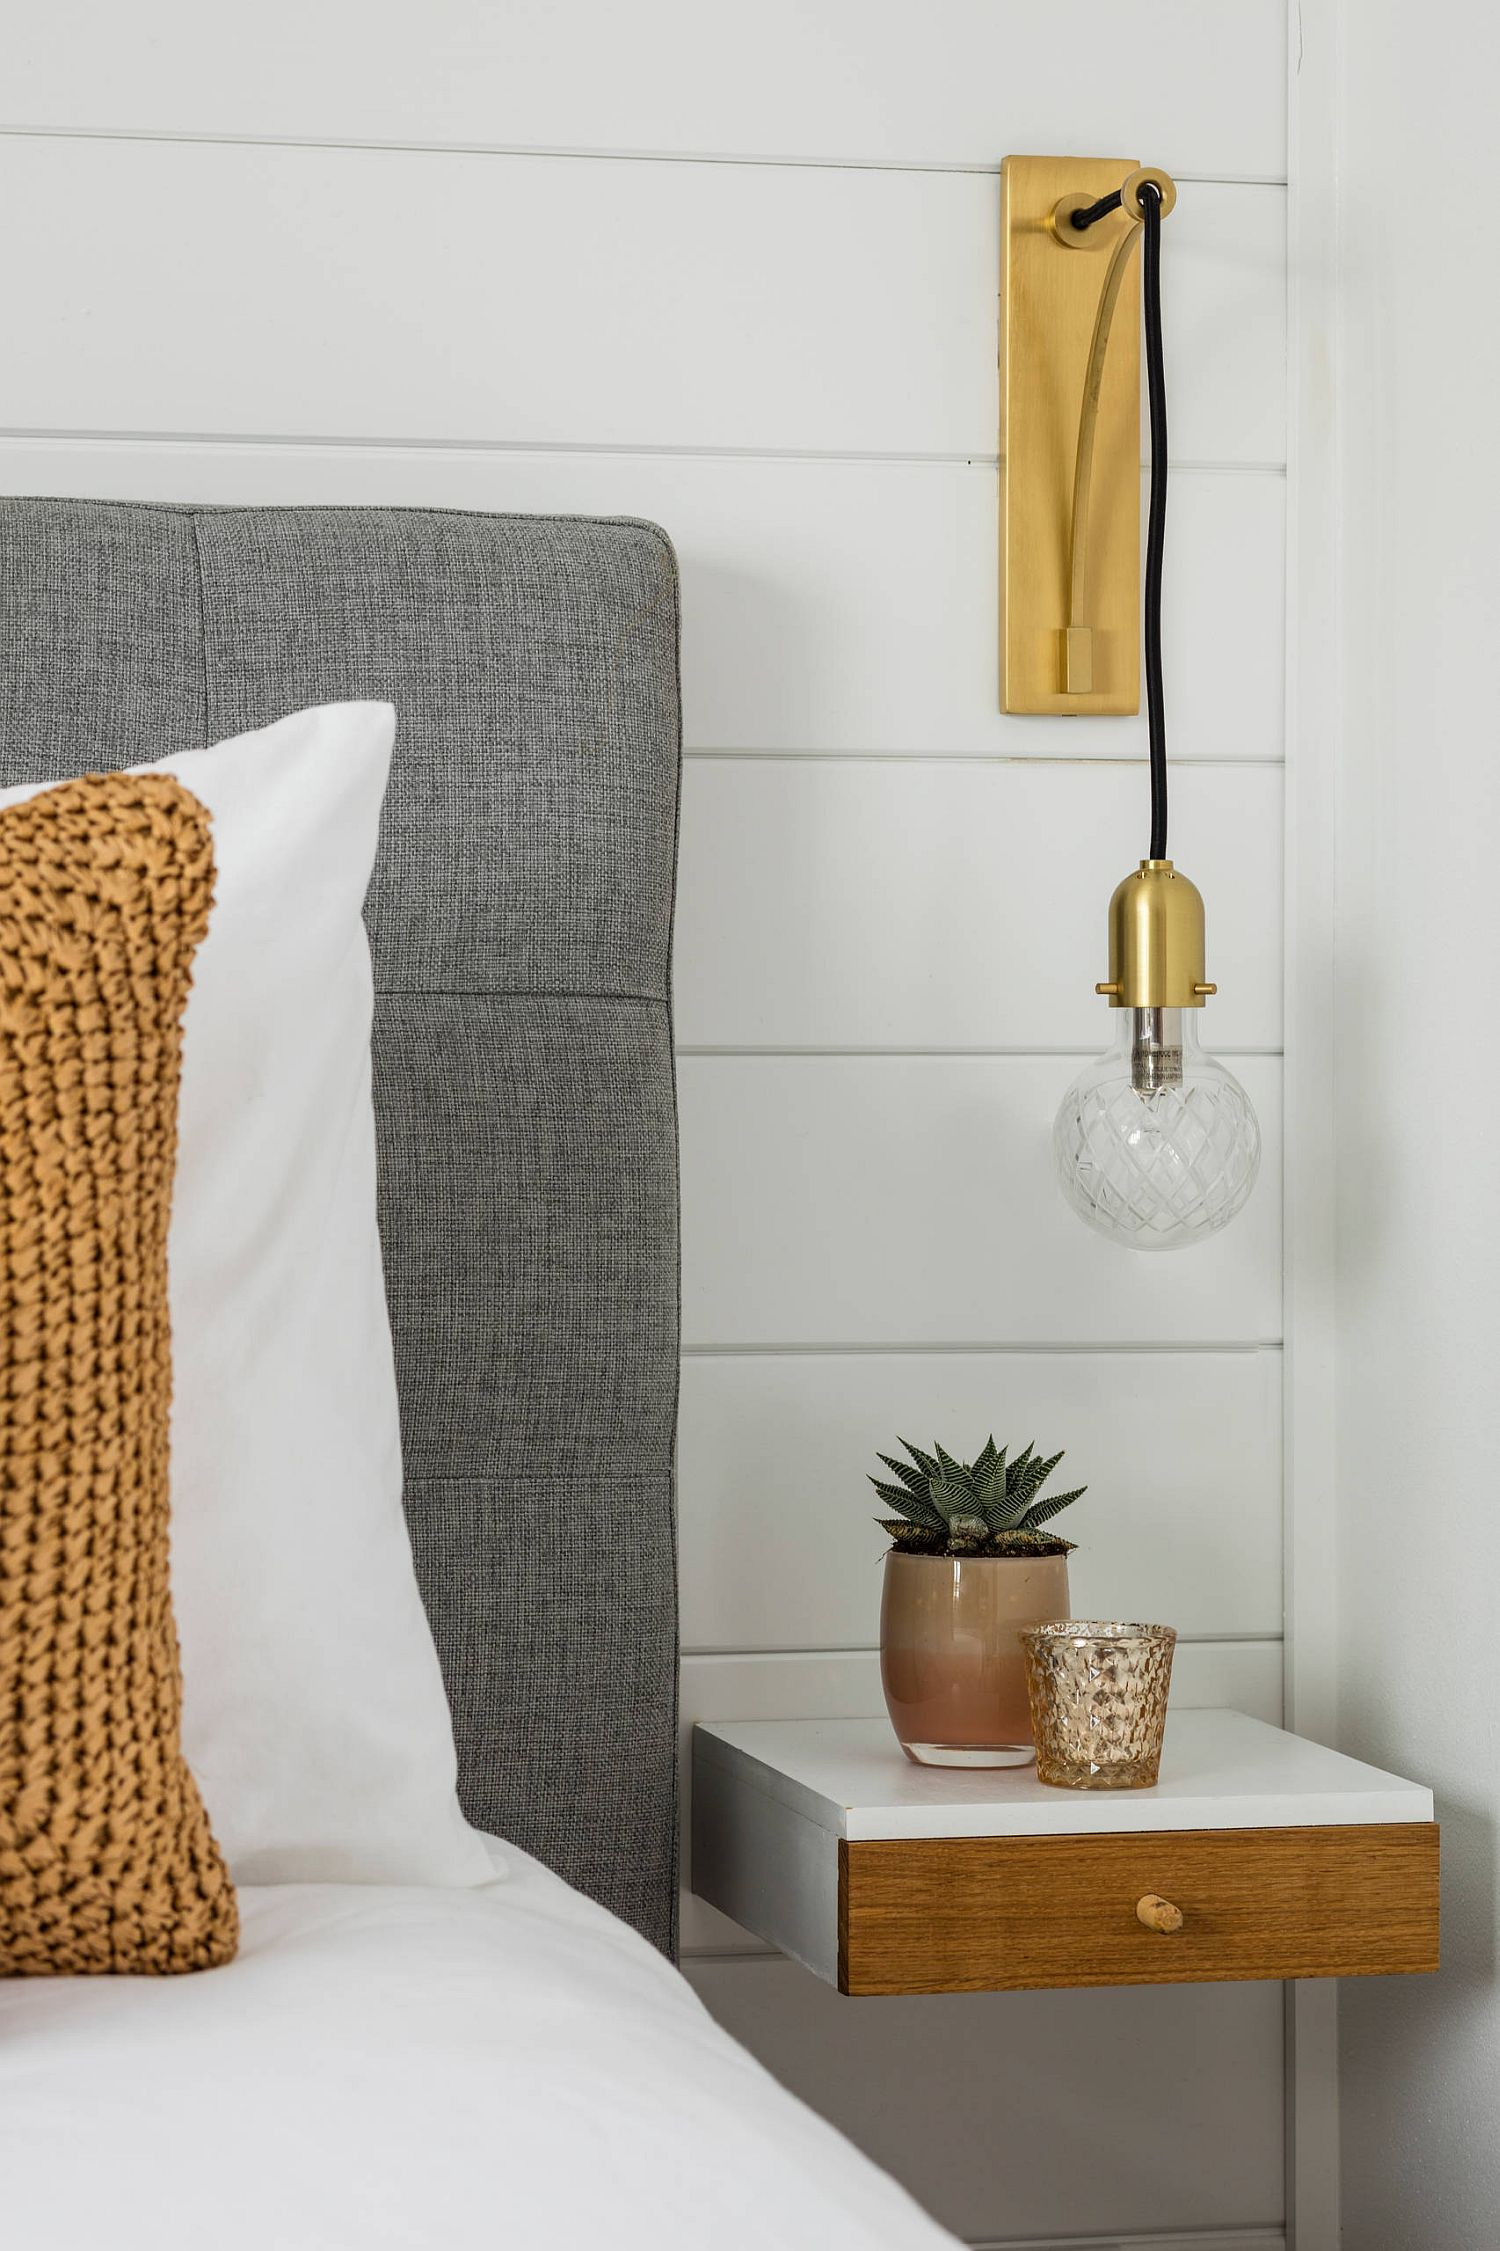 Bedside lighting that is wall-mounted can save space with ease